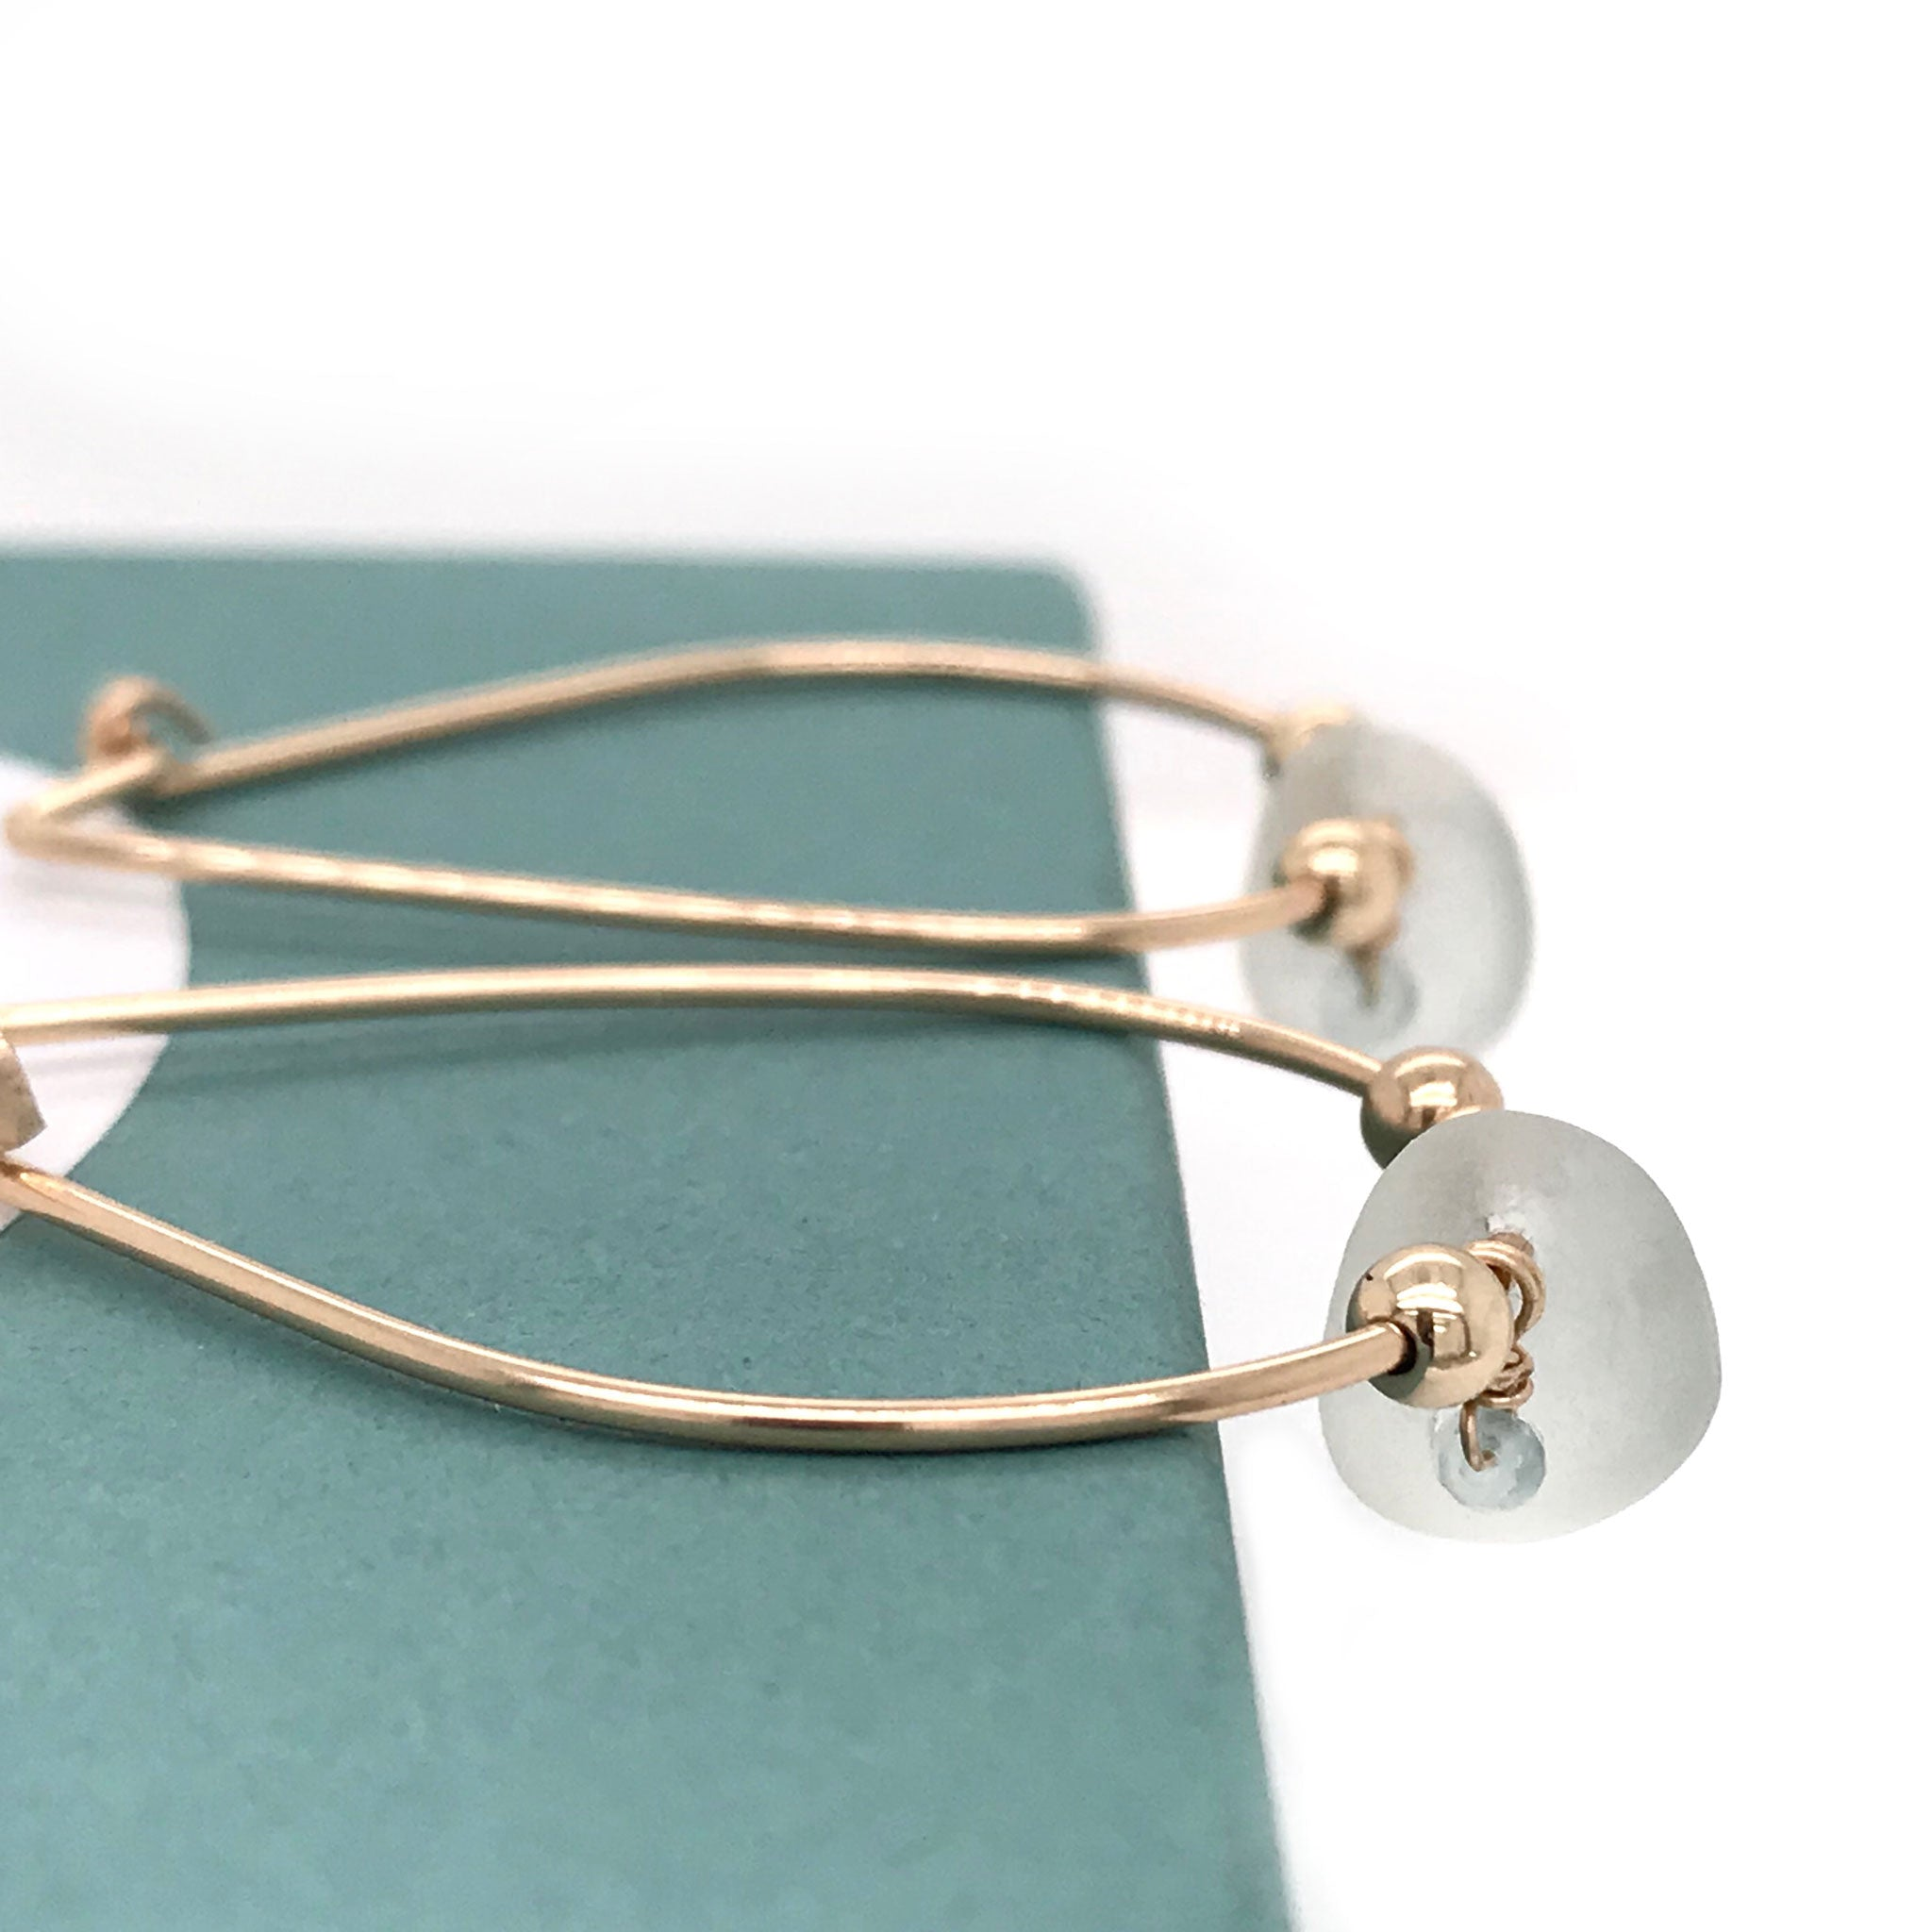 hoop earrings with seaglass kriket broadhurst seaglass jewellery